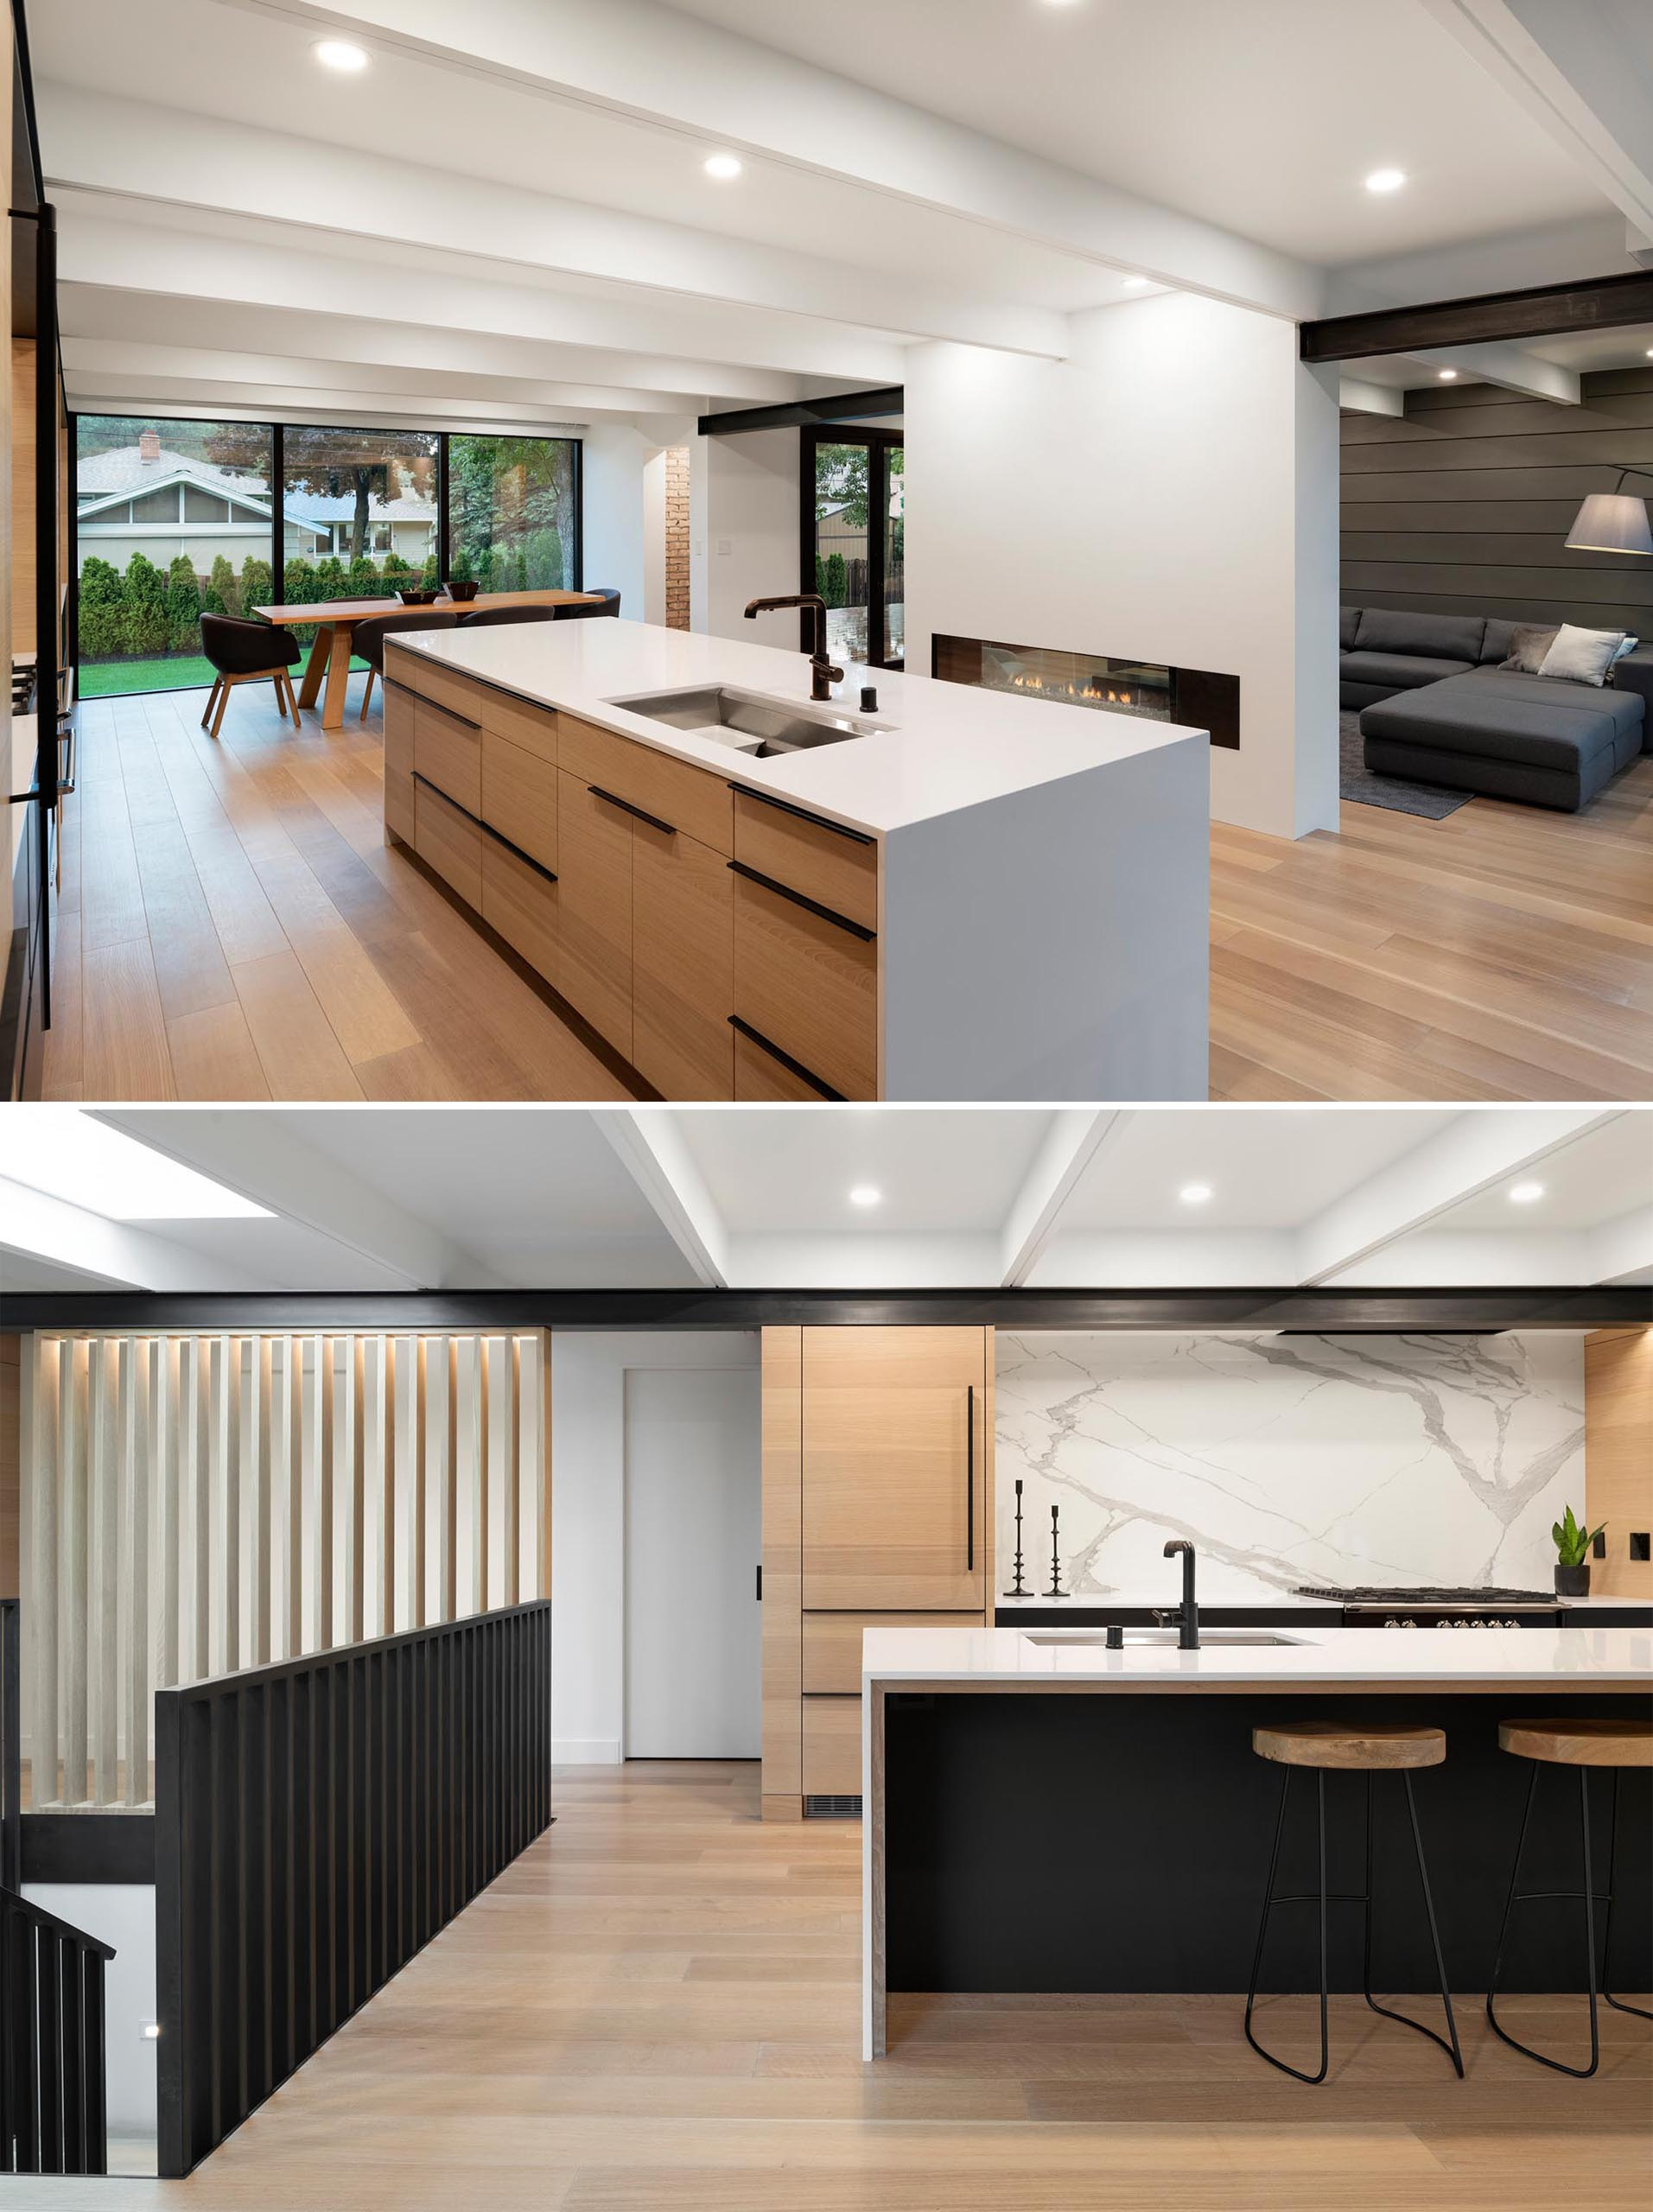 Wood kitchen cabinets are accented by minimalist black hardware and white countertops.